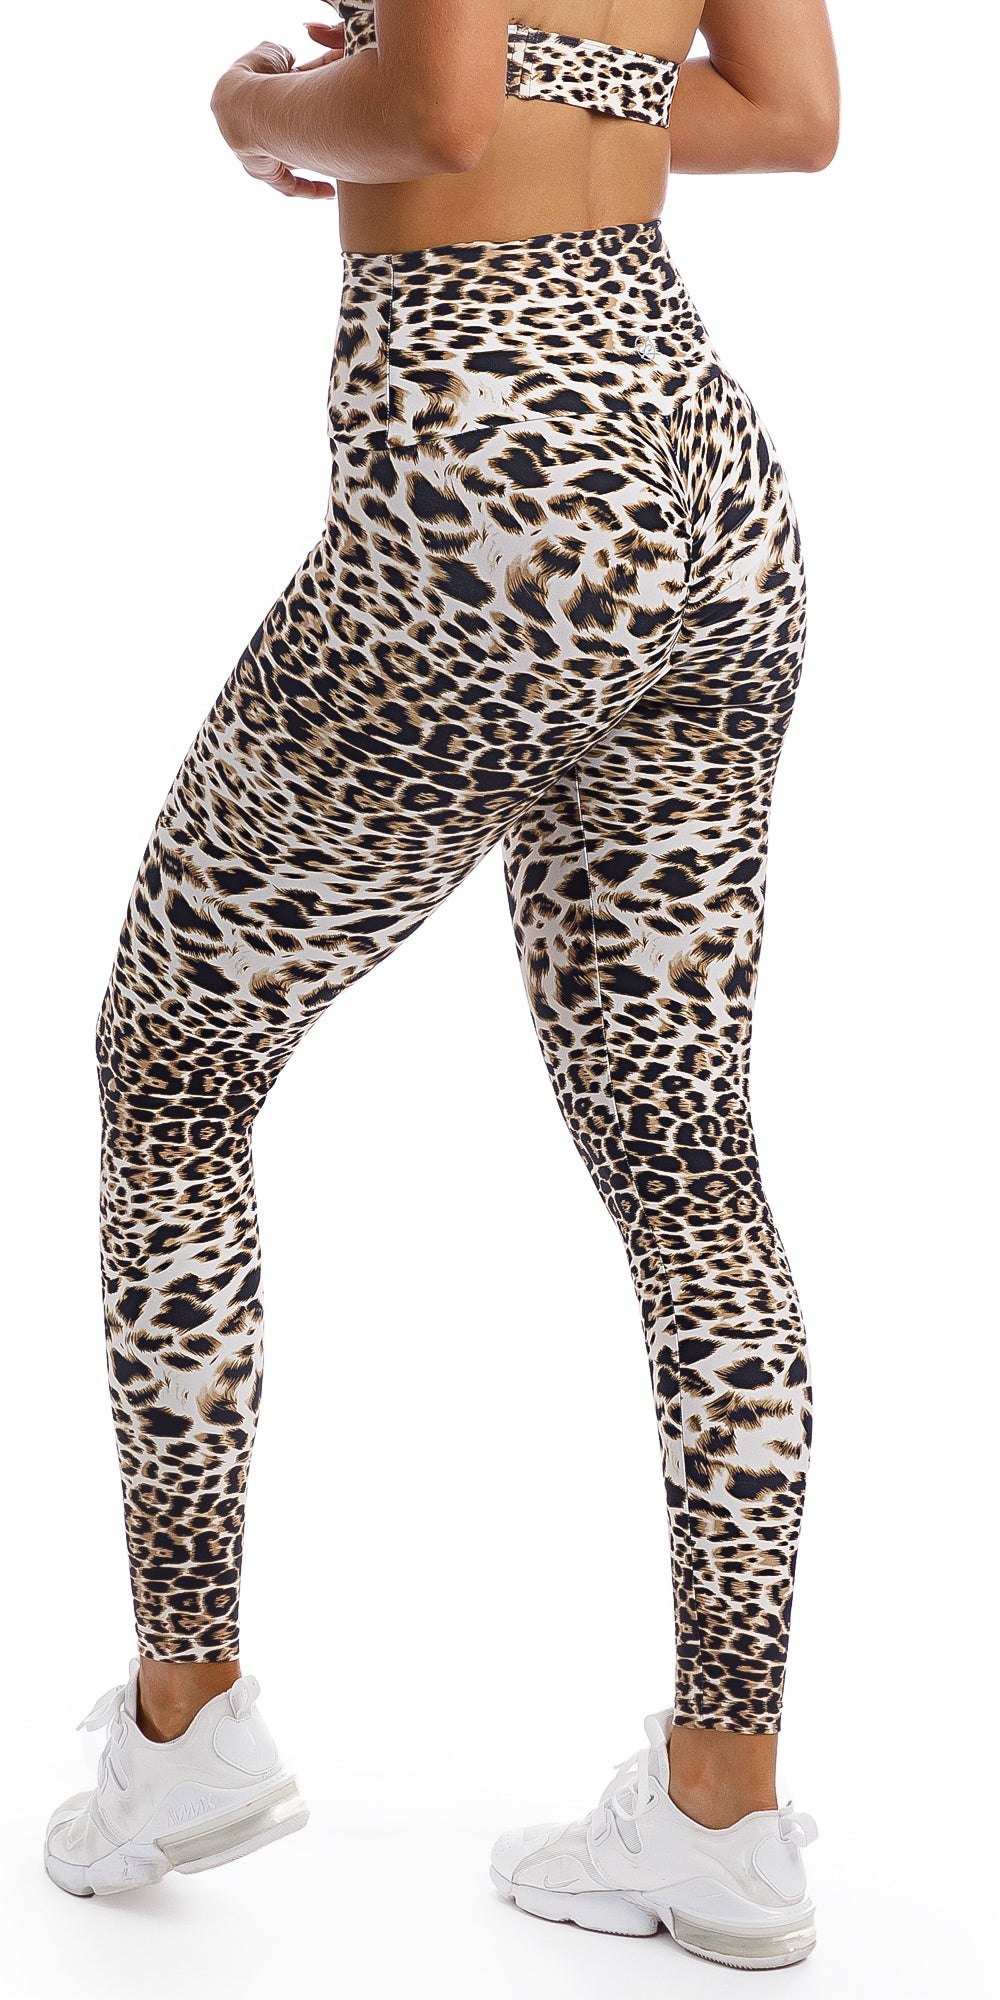 Girl wearing brown & white cheetah print scrunch bum leggings & matching infinity bra